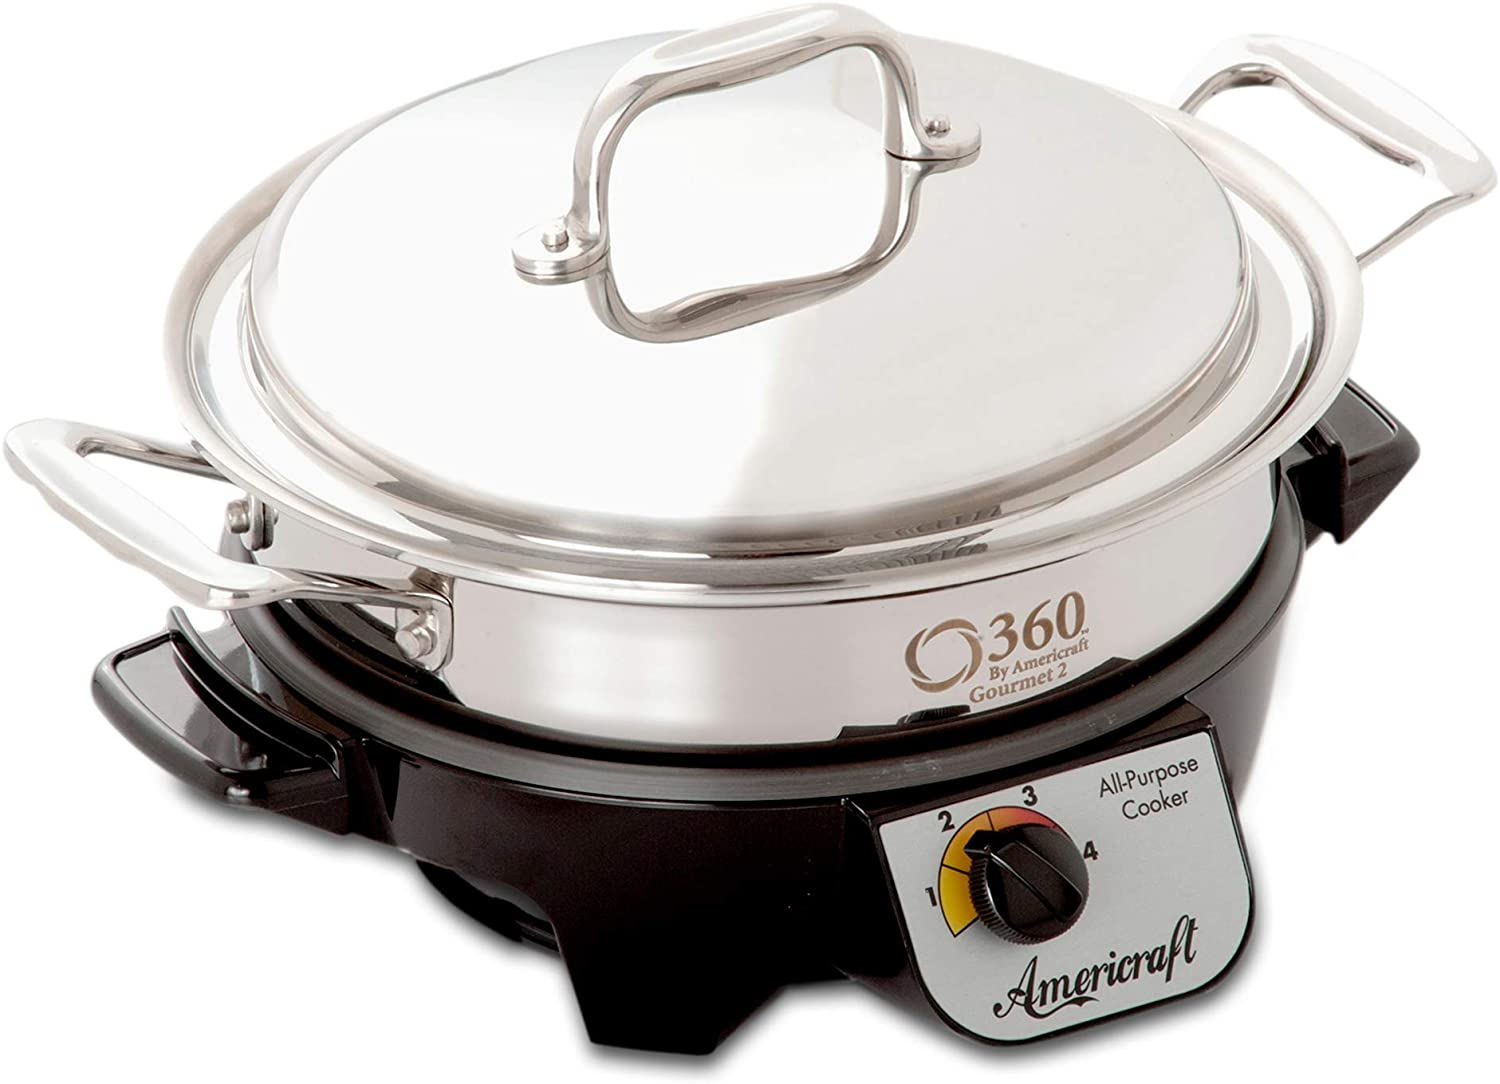 360 Stainless Steel Slow Cooker, 2.3 Quart Saute Pan is Induction Cookware, Waterless Cookware, Dishwasher Safe, Oven Safe, Surgical Grade Stainless Steel Cookware. Electric Slow Cooker Base Included.